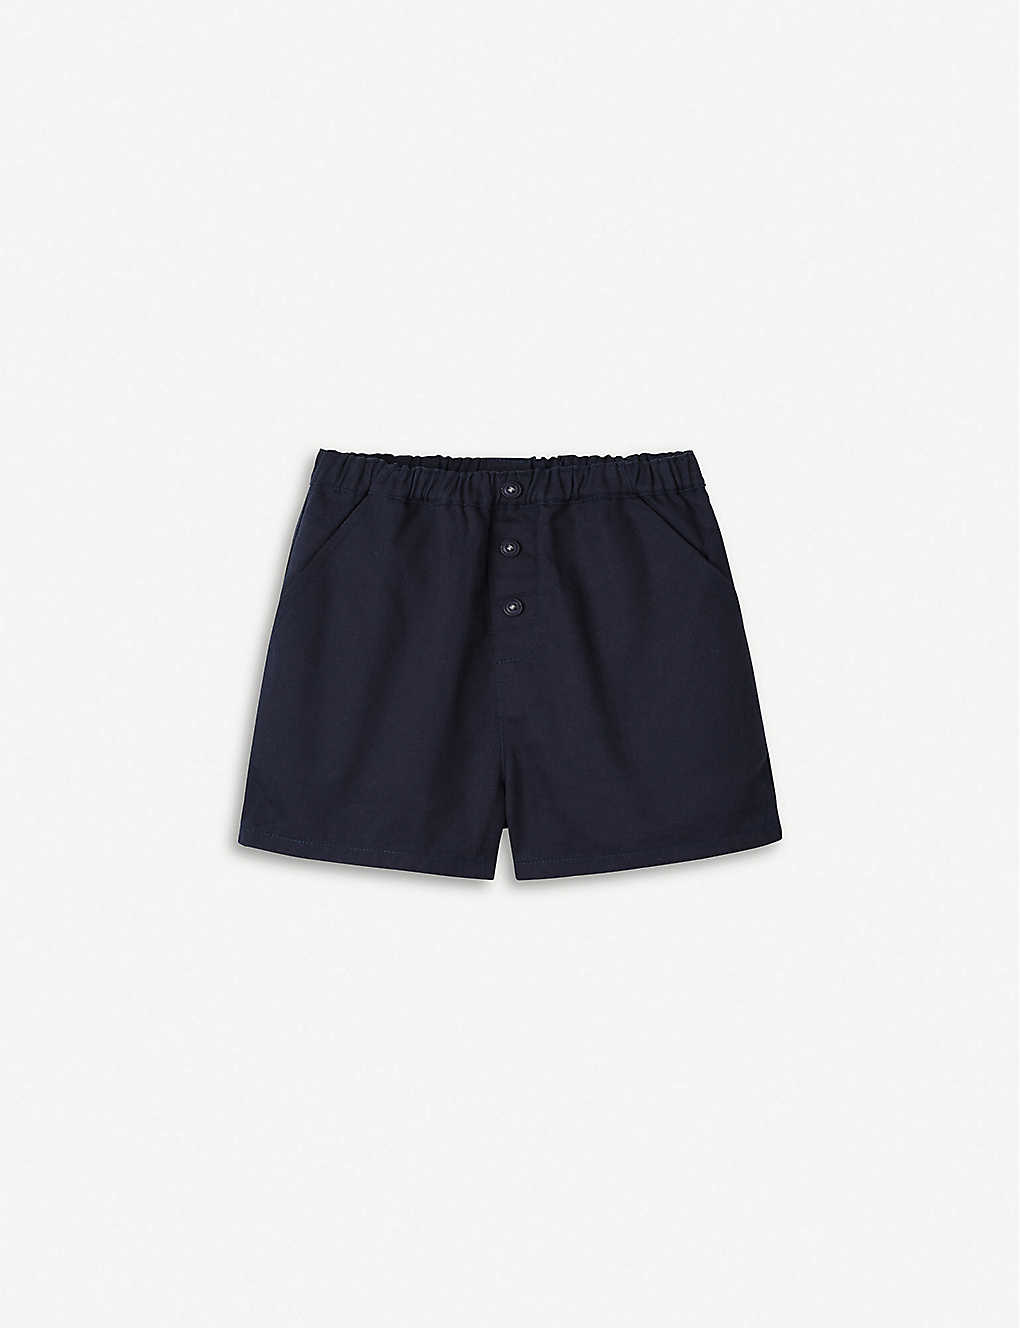 THE LITTLE WHITE COMPANY: Summer cotton shorts 0-24 months